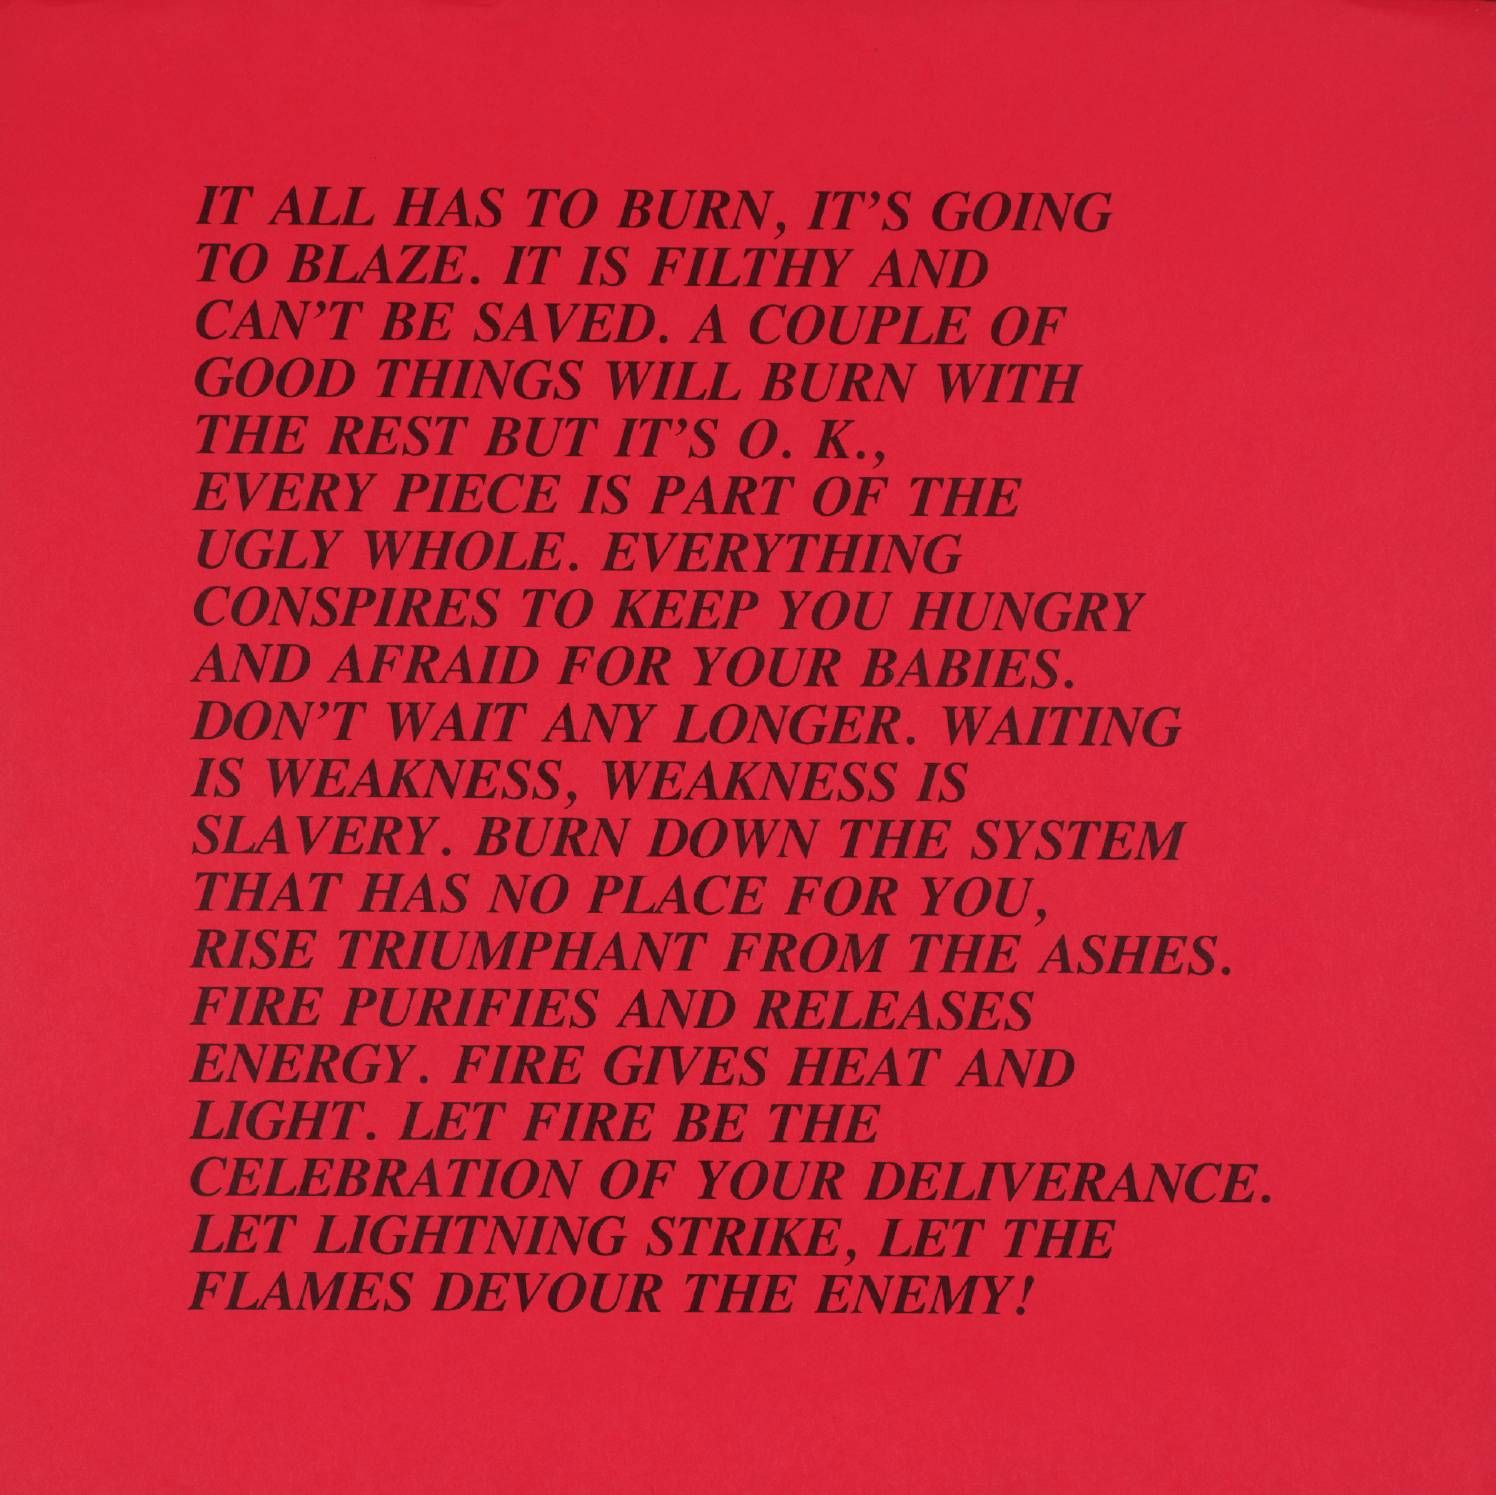 jenny holzer truisms truisms jenny holzer art street holzer inflammatory inflammatory essays jenny holzers art jenny holzer things inscribed jenny holzer 1 carter daaeacute holzers essay